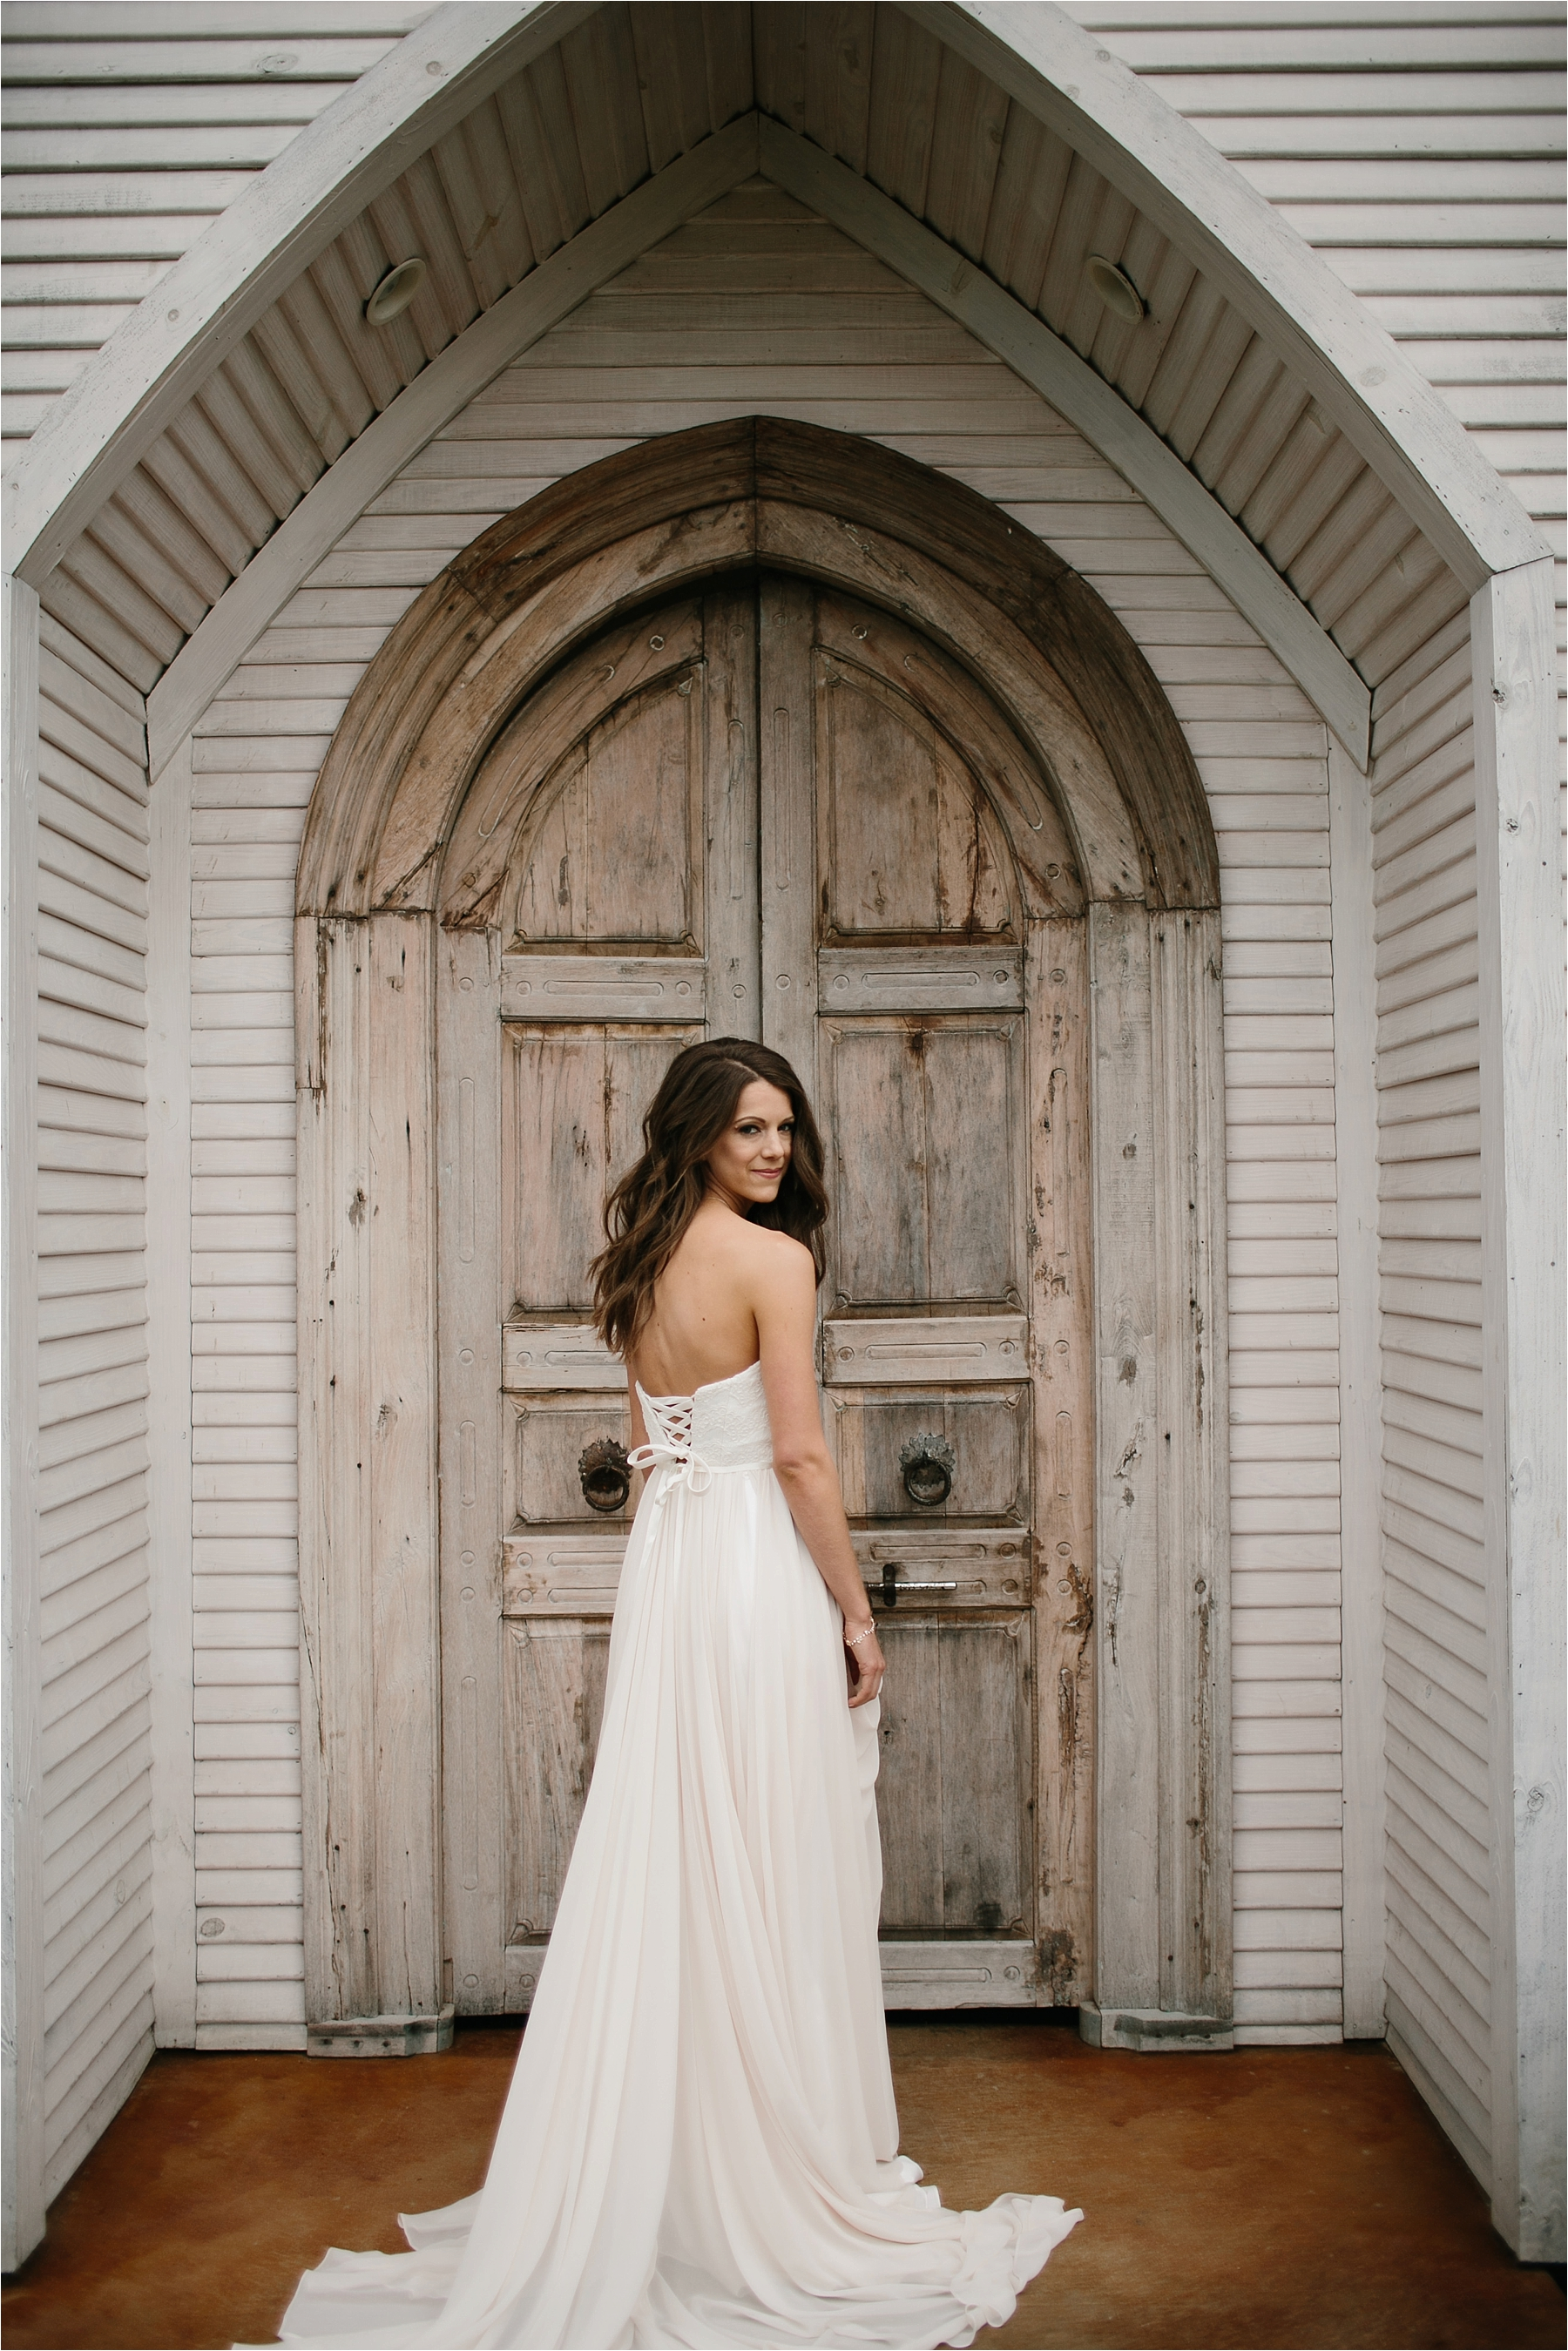 Lauren + Matt __ an intimate, emotional, blush pink, navy blue, and greenery toned wedding accents at the Brooks at Weatherford by North Texas Wedding Photographer Rachel Meagan Photography022